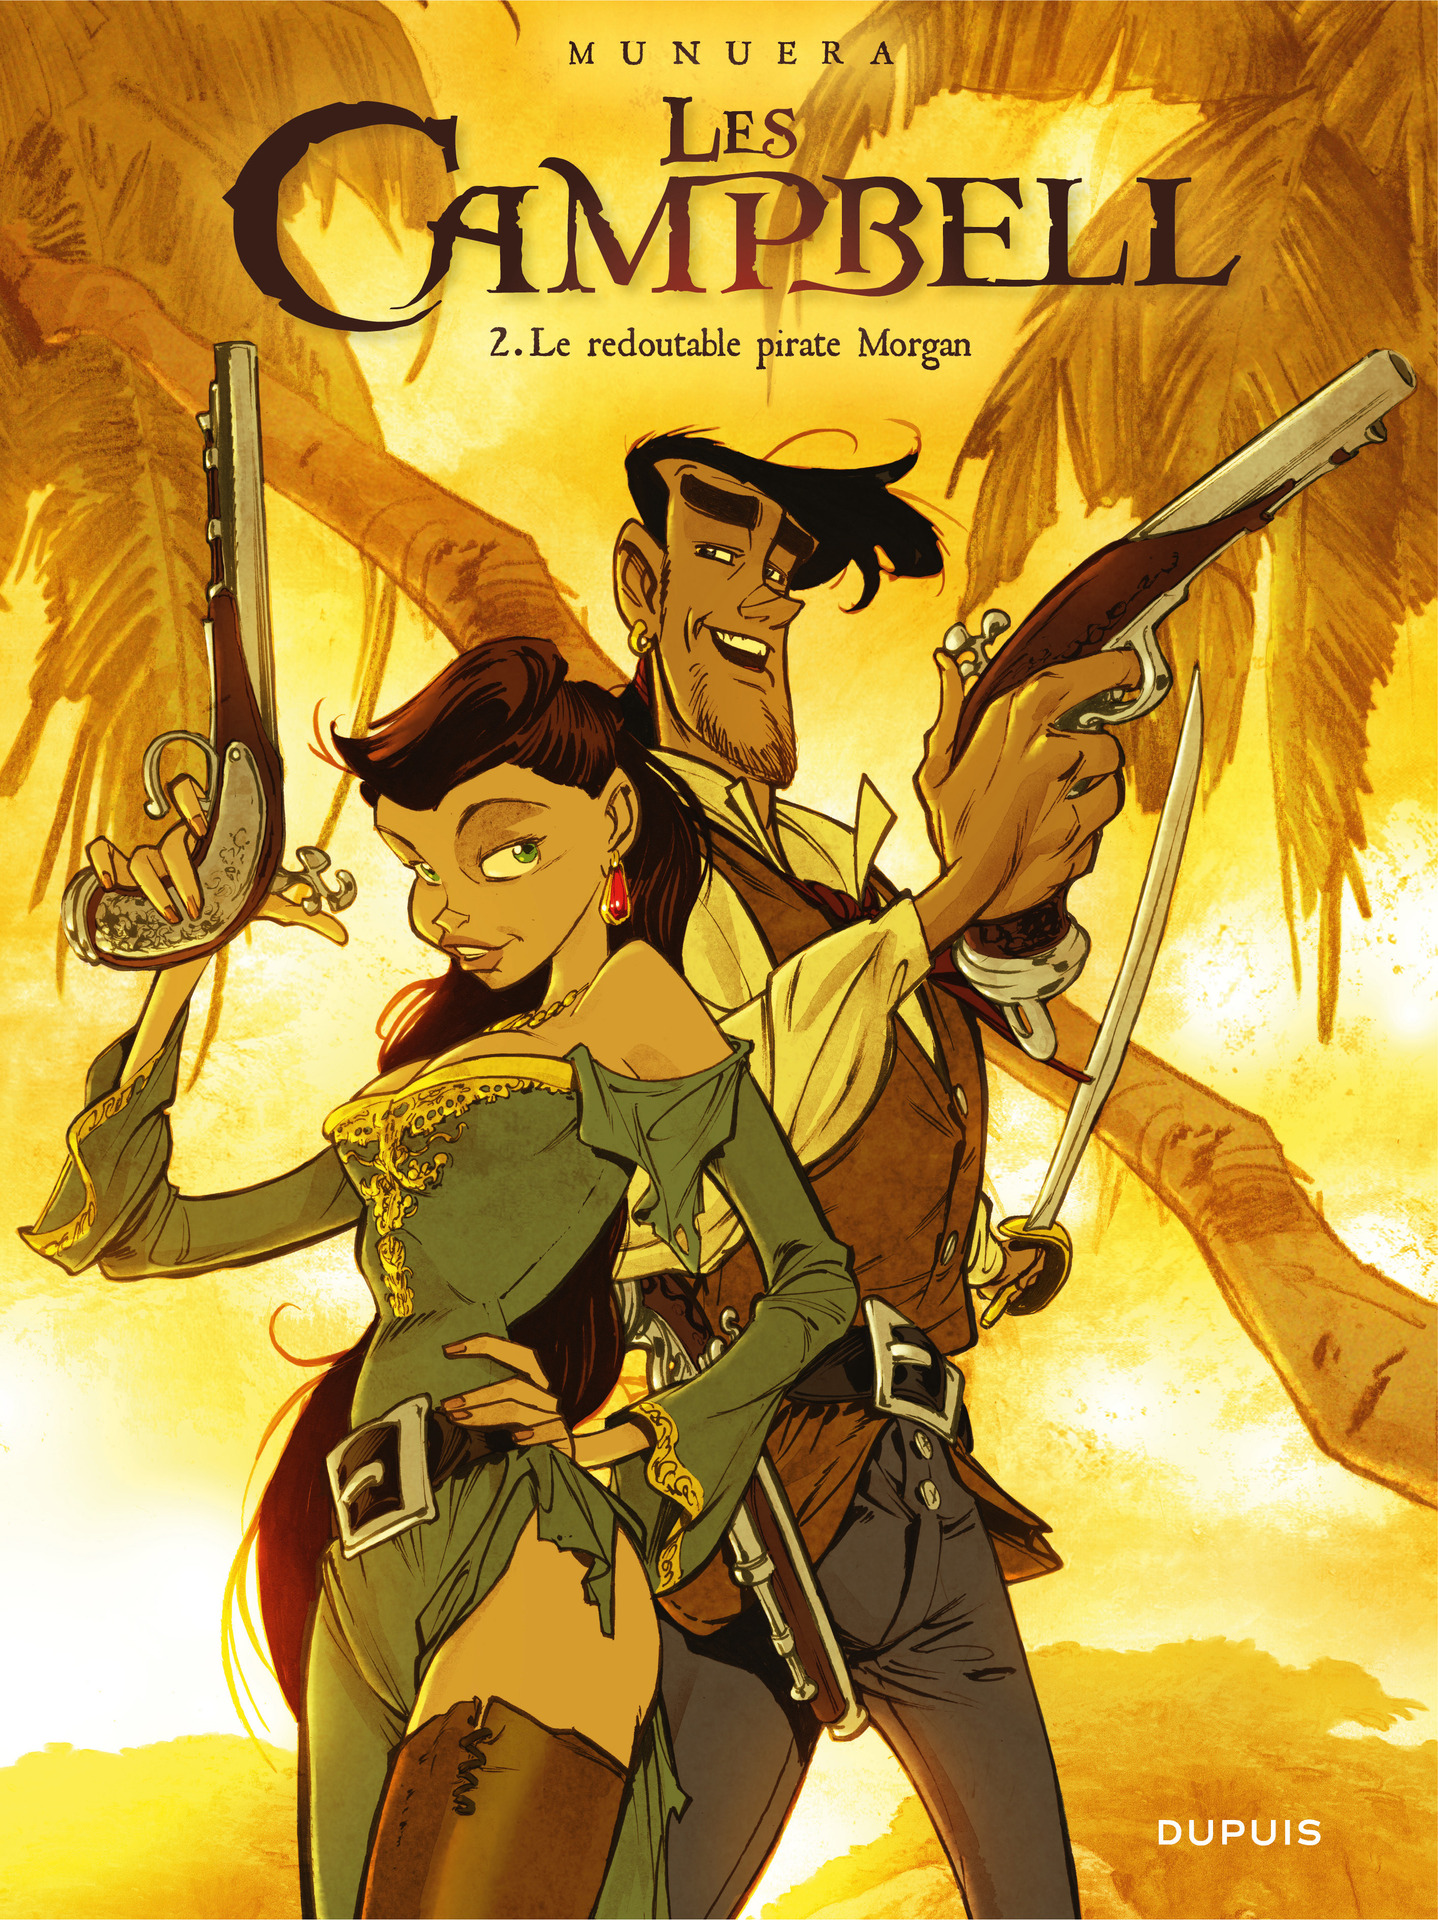 Les Campbell - Tome 2 - Le redoutable pirate Morgan | Jose Luis Munuera,